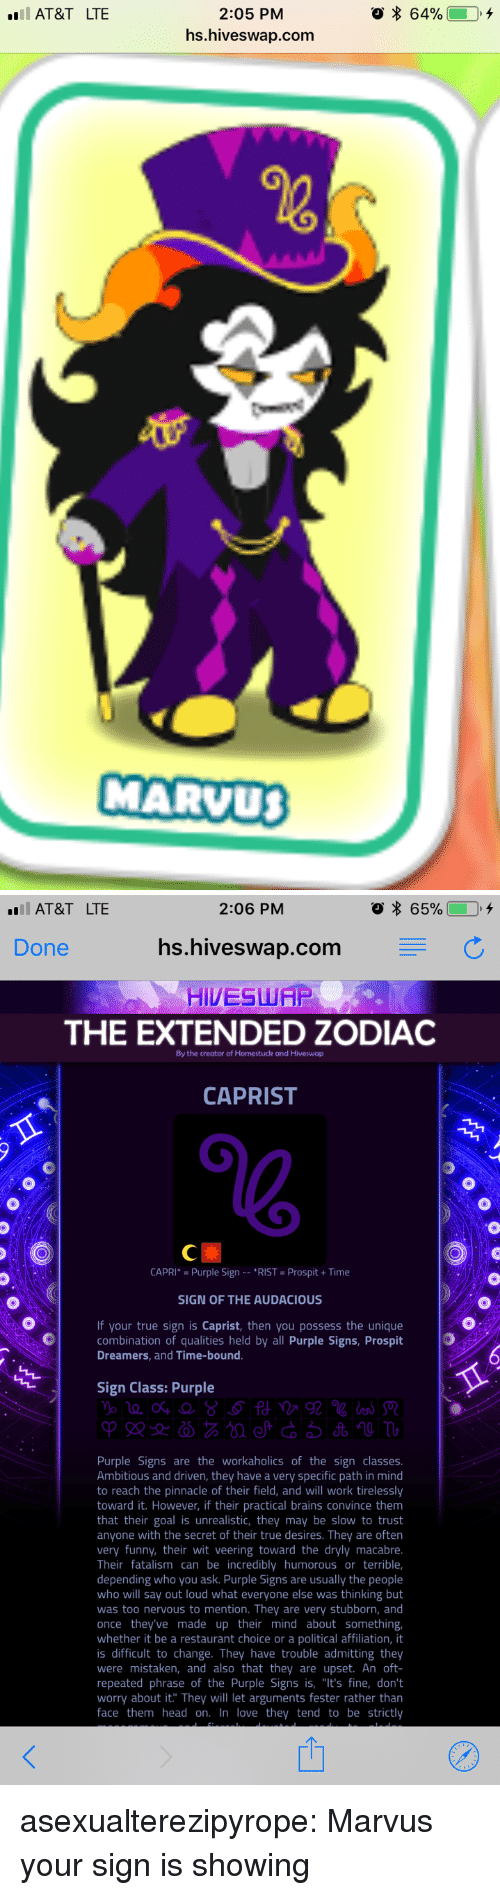 """Brains, Funny, and Head: 2:05 PM  hs.hiveswap.com  AT&T LTE  MARVU   AT&T LTE  2:06 PM  Done  hs.hiveswap.com C  HIVESWAP  THE EXTENDED ZODIAC  By the creator of Homestuck and Hiveswap  CAPRIST  CAPRI* Purple Sign *RIST Prospit+Time  SIGN OF THE AUDACIOUS  If your true sign is Caprist, then you possess the unique  combination of qualities held by all Purple Signs, Prospit  Dreamers, and Time-bound  Sign Class: Purple  Purple Signs are the workaholics of the sign classes  Ambitious and driven, they have a very specific path in mind  to reach the pinnacle of their field, and will work tirelessly  toward it. However, if their practical brains convince them  that their goal is unrealistic, they may be slow to trust  anyone with the secret of their true desires. They are often  very funny, their wit veering toward the dryly macabre  Their fatalism can be incredibly humorous or terrible,  depending who you ask. Purple Signs are usually the people  who will say out loud what everyone else was thinking but  was too nervous to mention. They are very stubborn, and  once they've made up their mind about something  whether it be a restaurant choice or a political affiliation, it  is difficult to change. They have trouble admitting they  were mistaken, and also that they are upset. An oft-  repeated phrase of the Purple Signs is, """"It's fine, don't  worry about it. They will let arguments fester rather than  face them head on. In love they tend to be strictly asexualterezipyrope:  Marvus your sign is showing"""